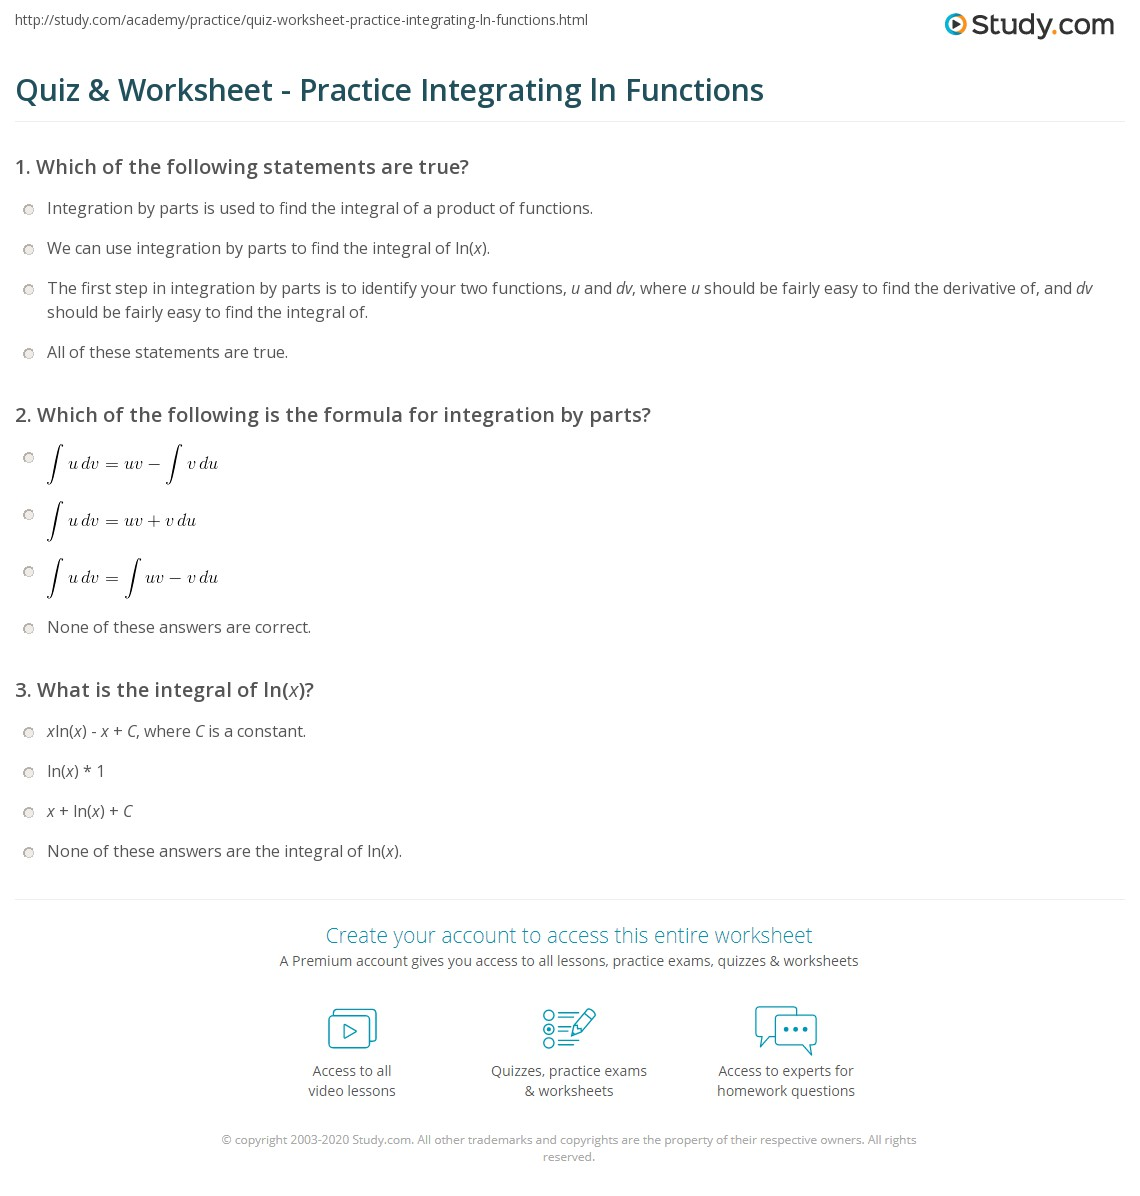 Worksheets Integration By Parts Worksheet quiz worksheet practice integrating ln functions study com which of the following is formula for integration by parts